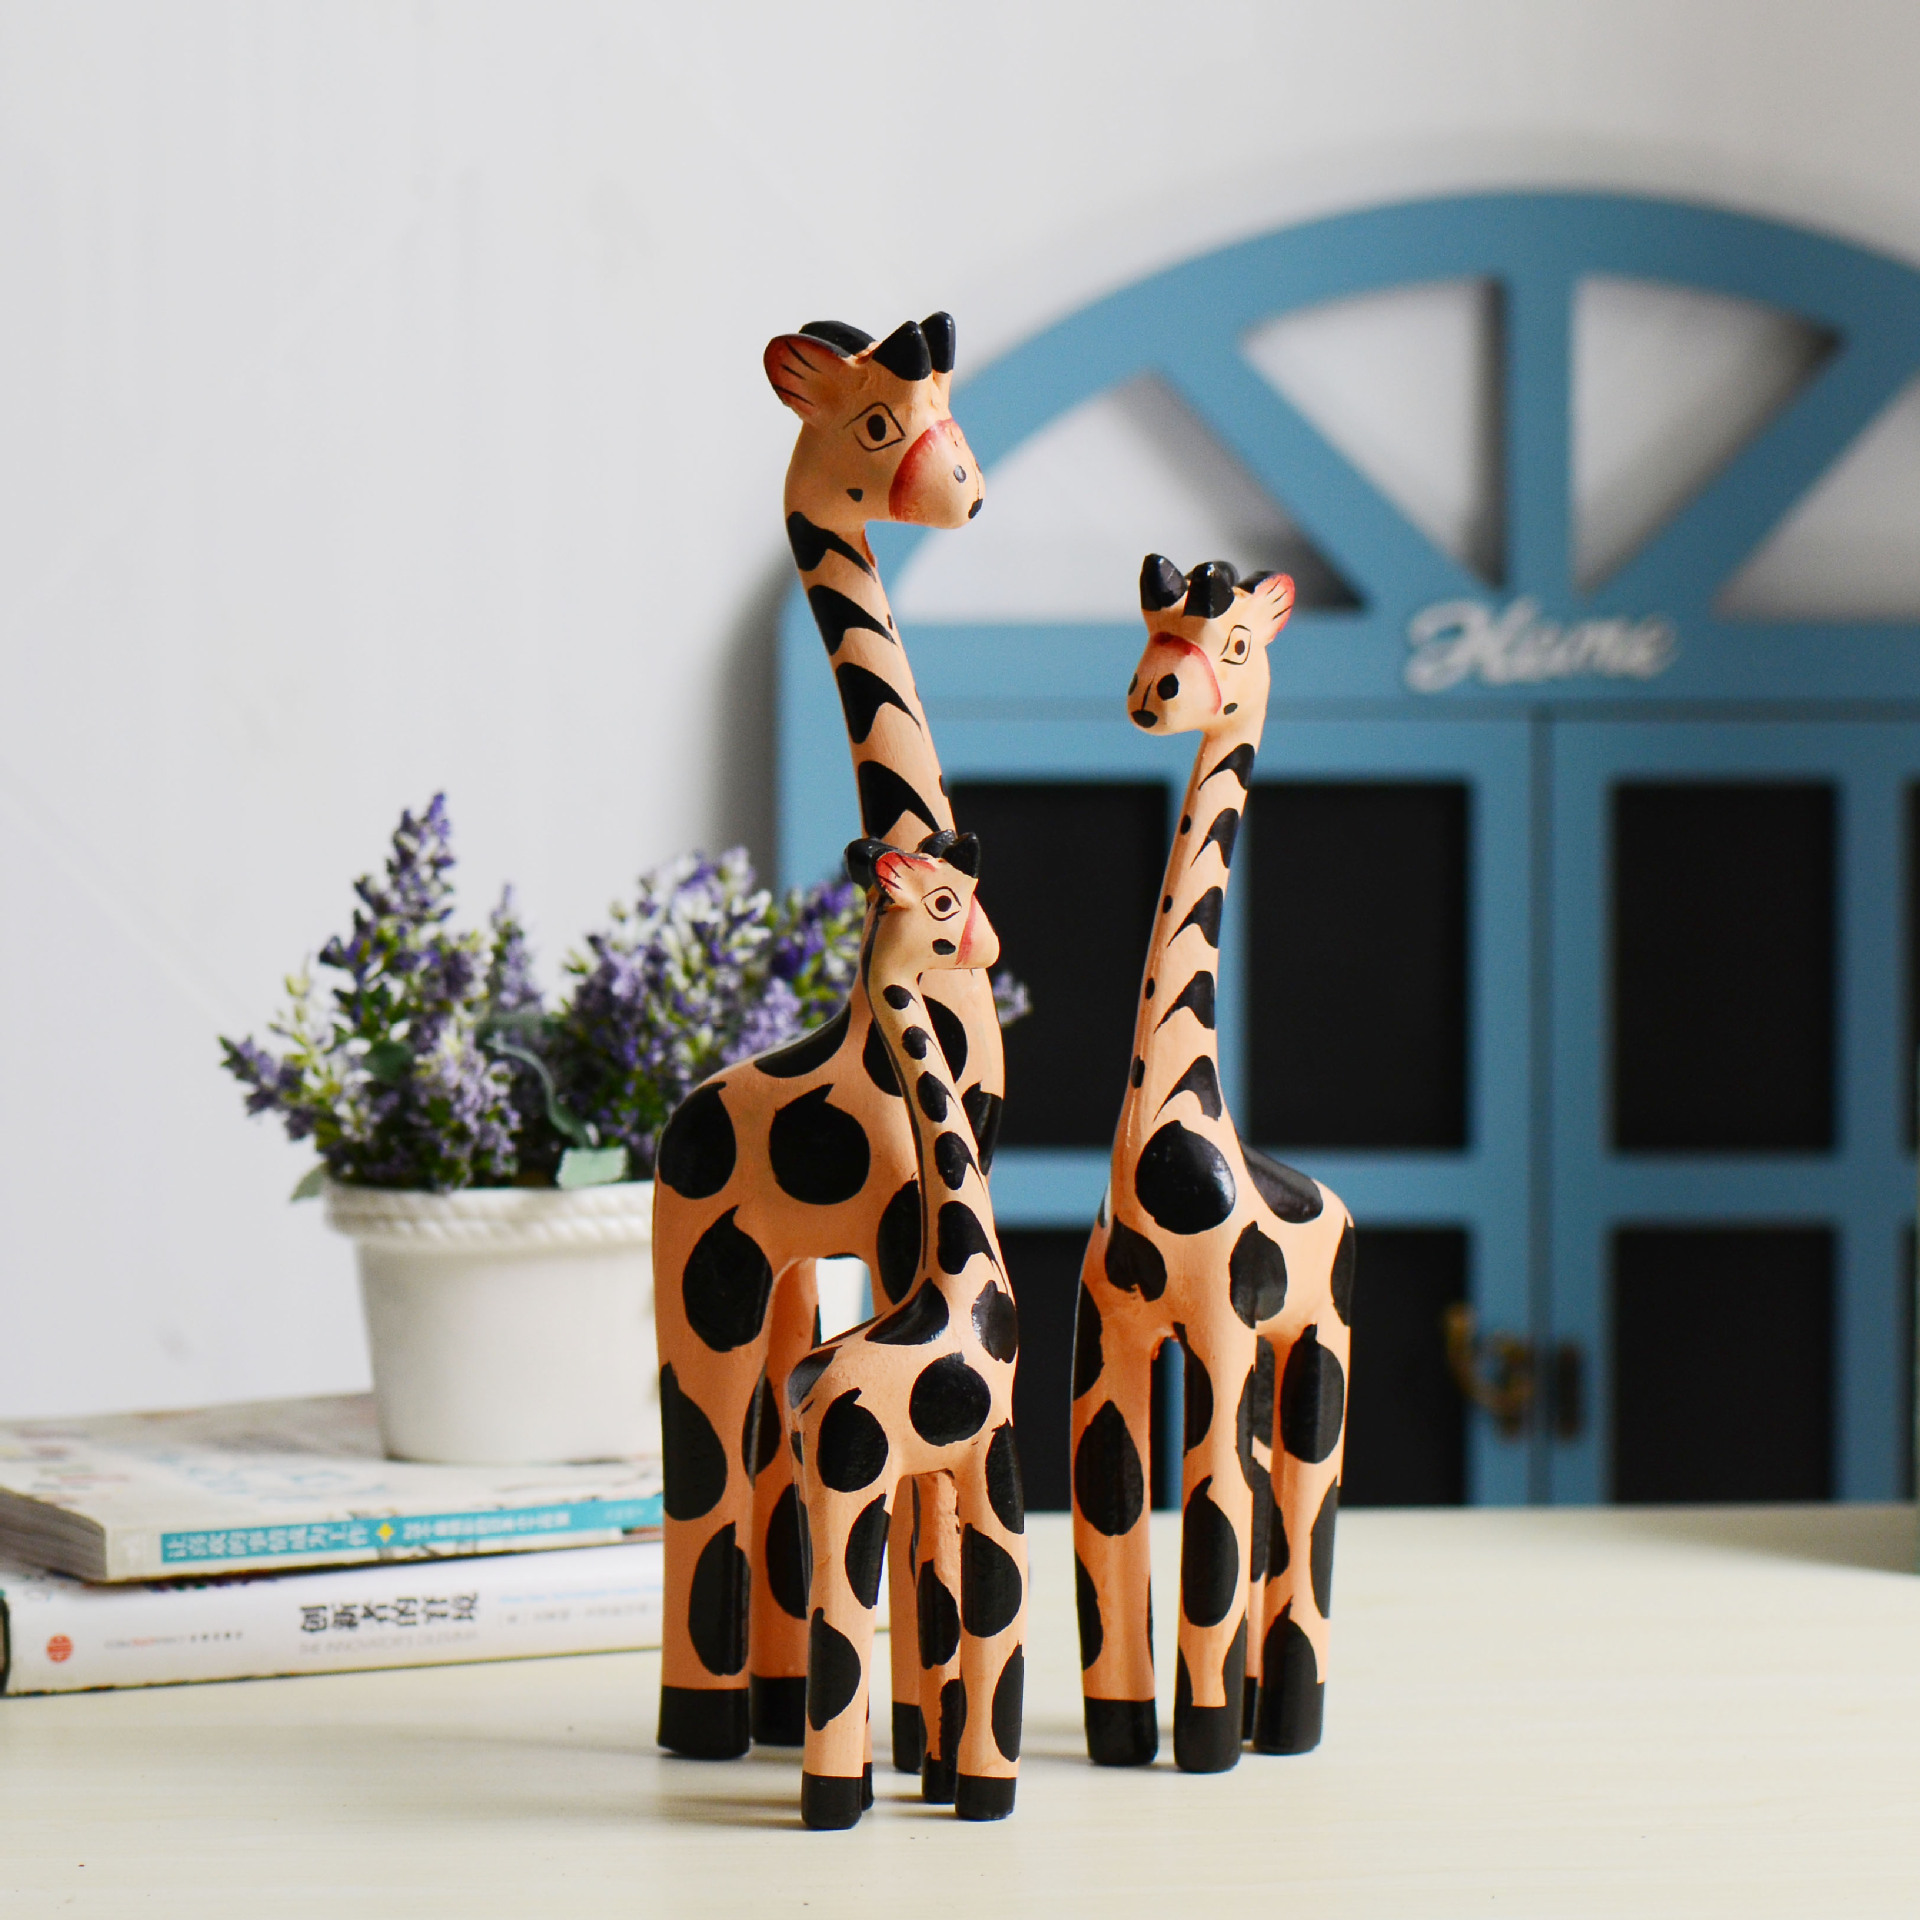 Animal ornaments - Giraffe Color Decoration Hand Painted Craft Gift Animal Ornaments Wood Table Home Decoration Accessories Ornament